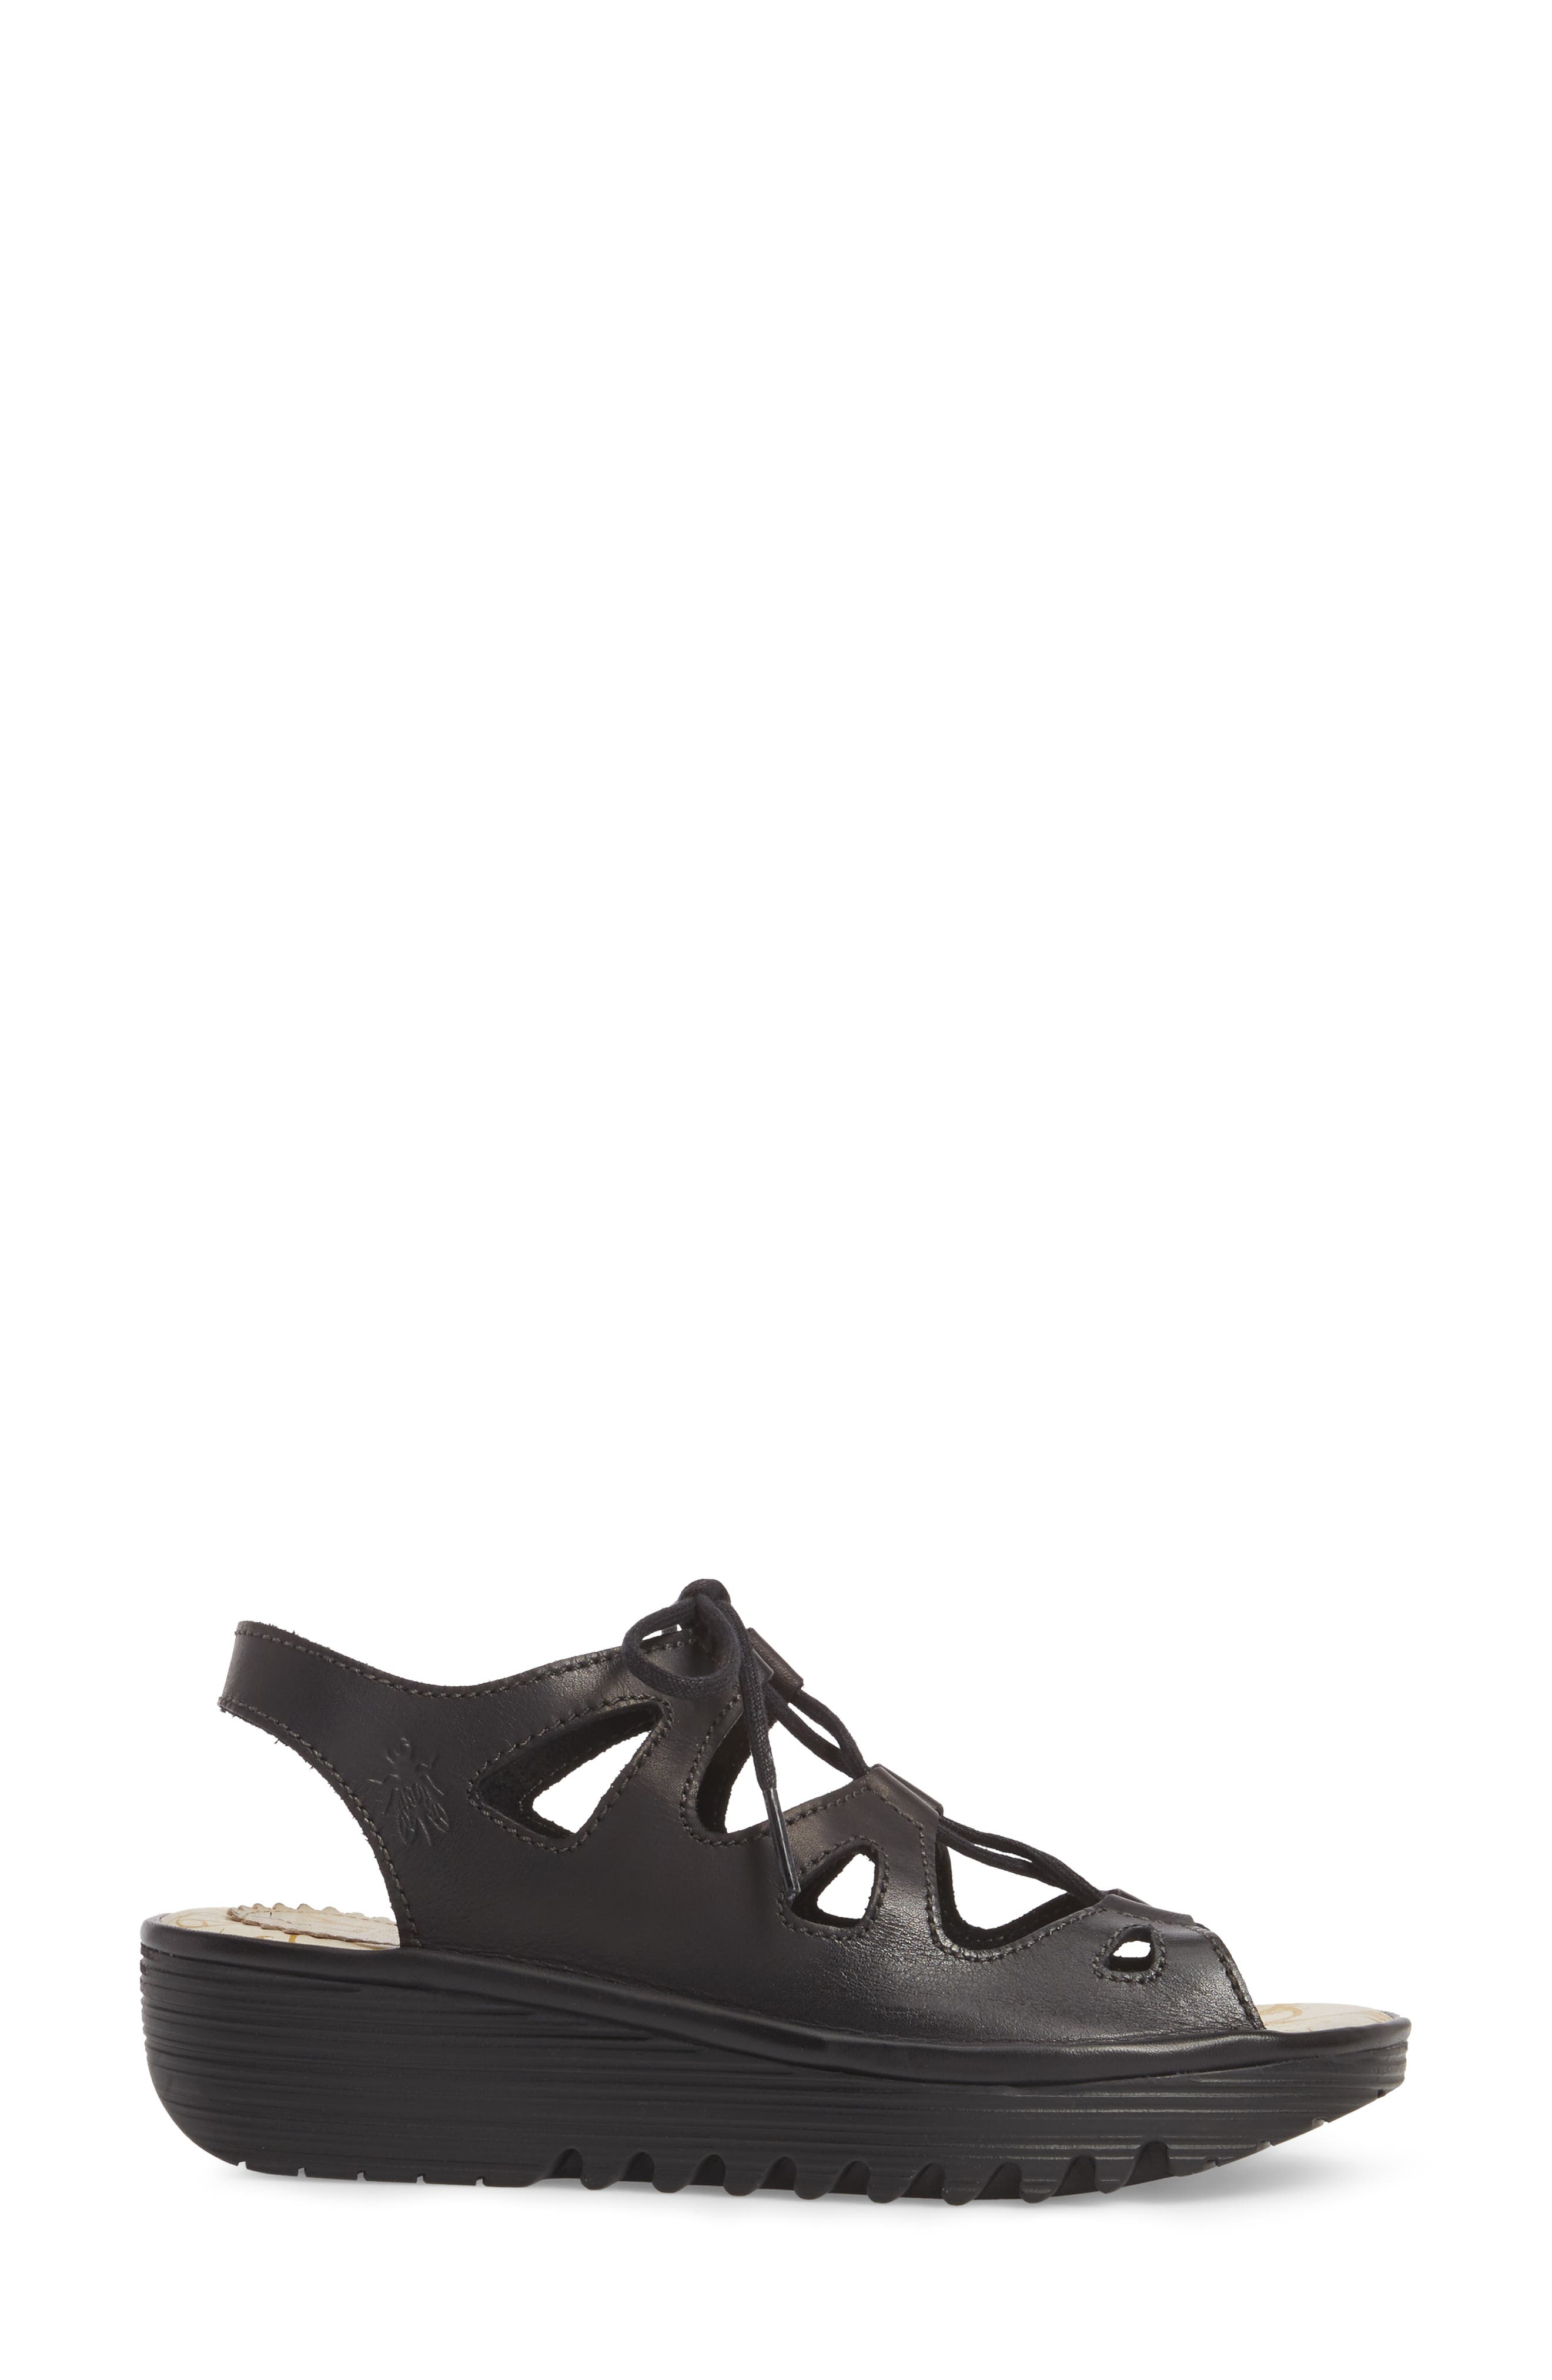 Exon Sandal,                             Alternate thumbnail 3, color,                             Black Colmar Leather